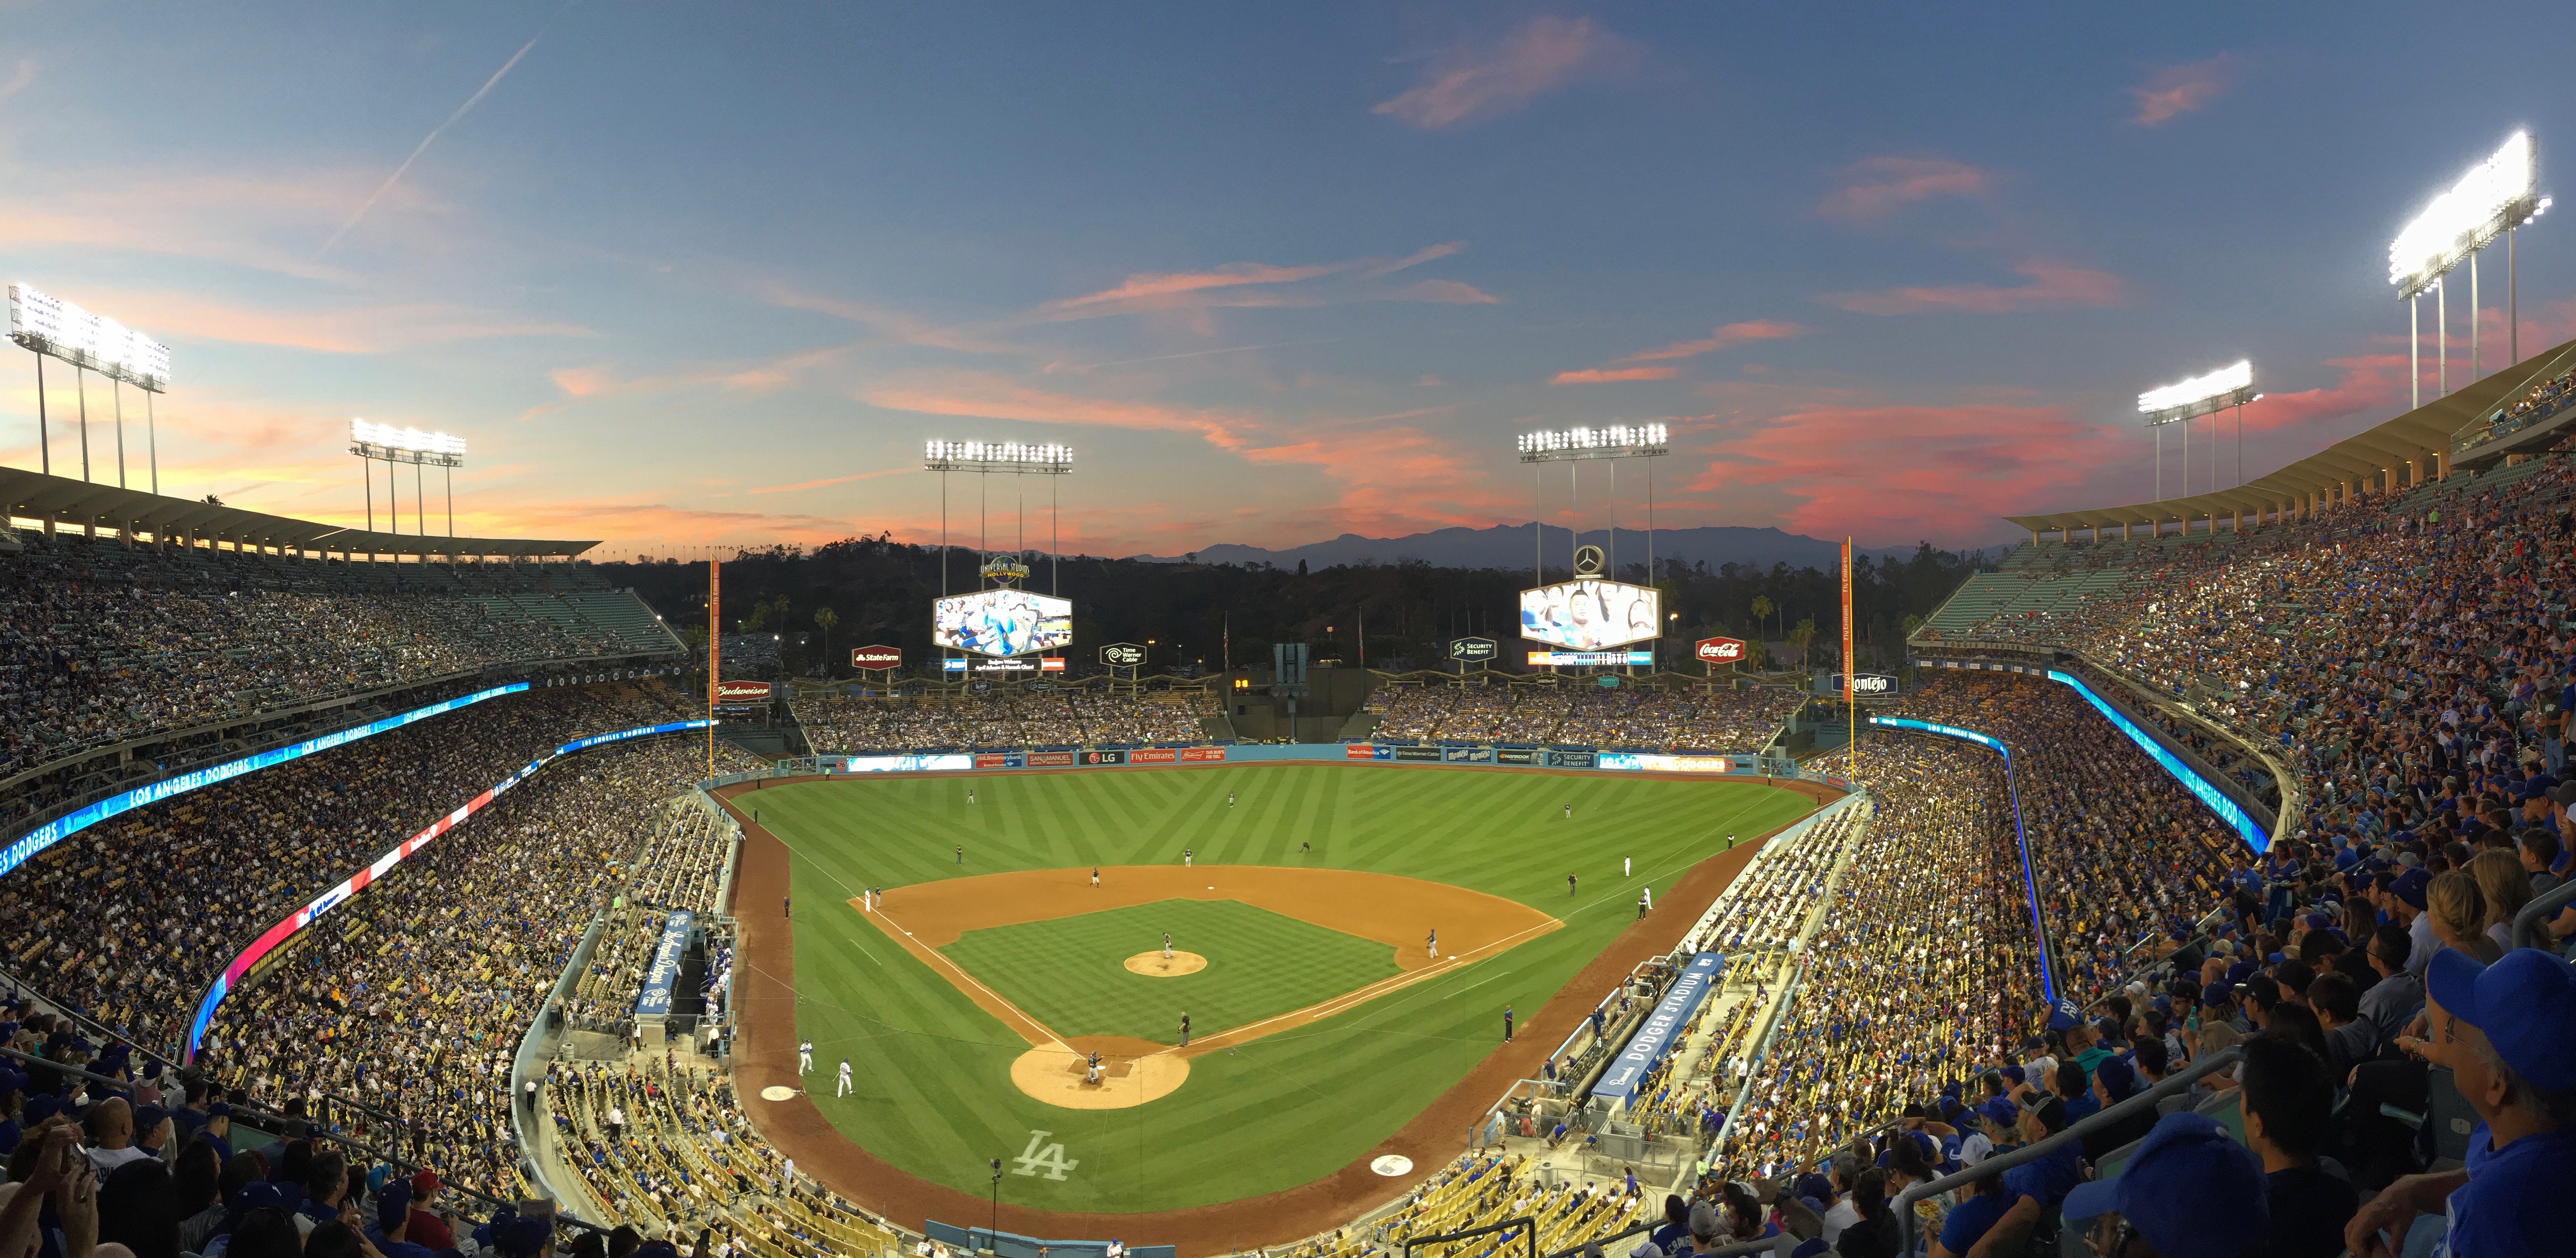 Sunset at Dodger Stadium